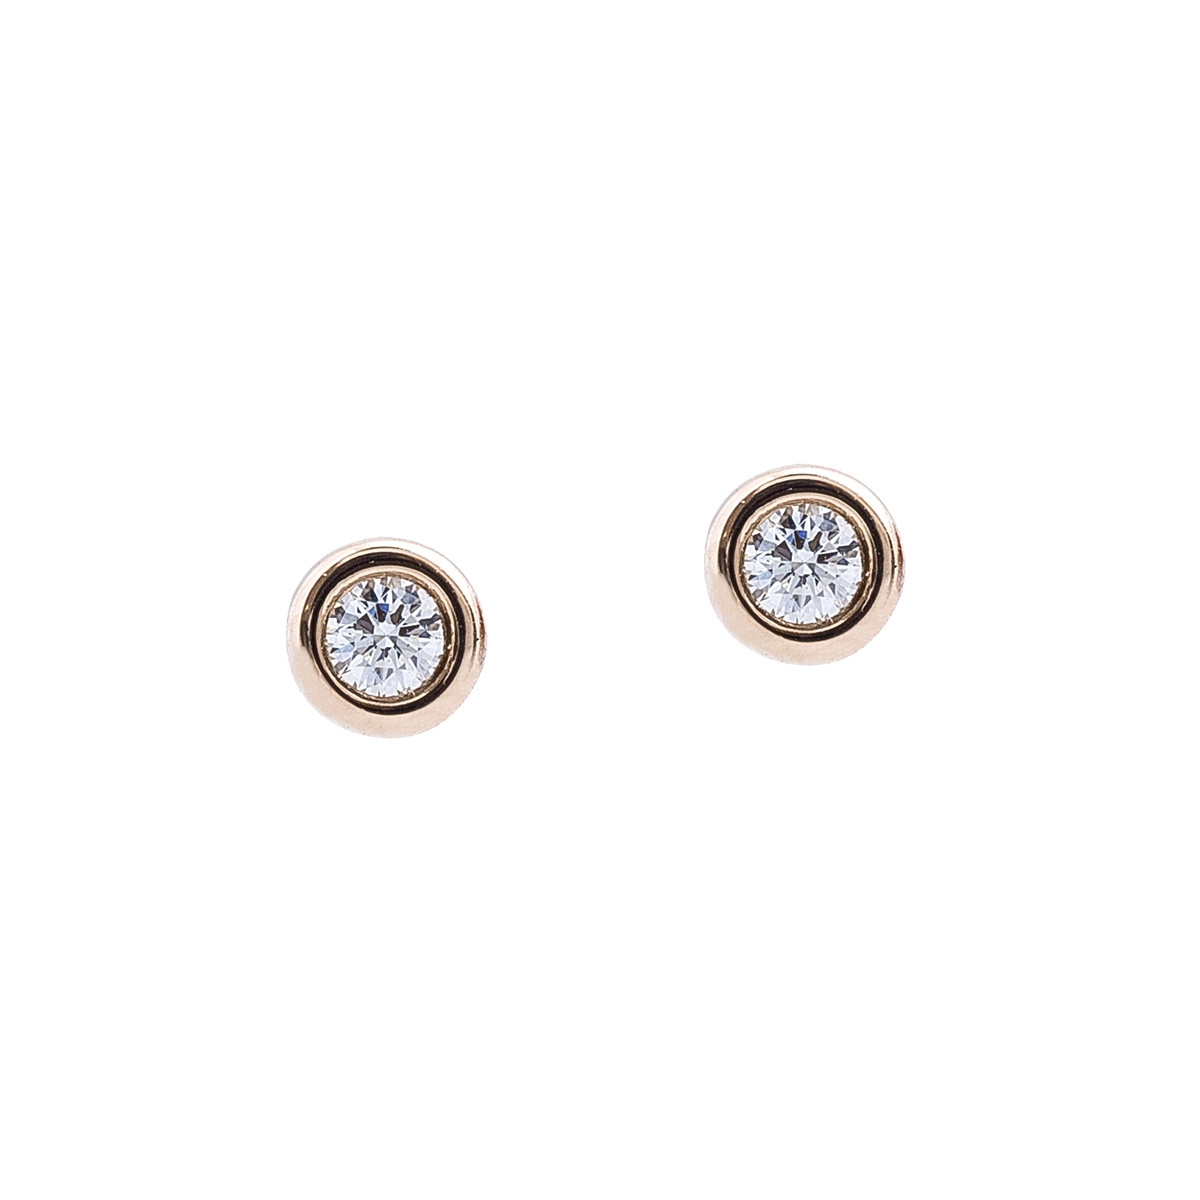 e06918d61 Vintage Tiffany & Co. Elsa Peretti Diamonds By The Yard Stud Earrings  Gallery Image